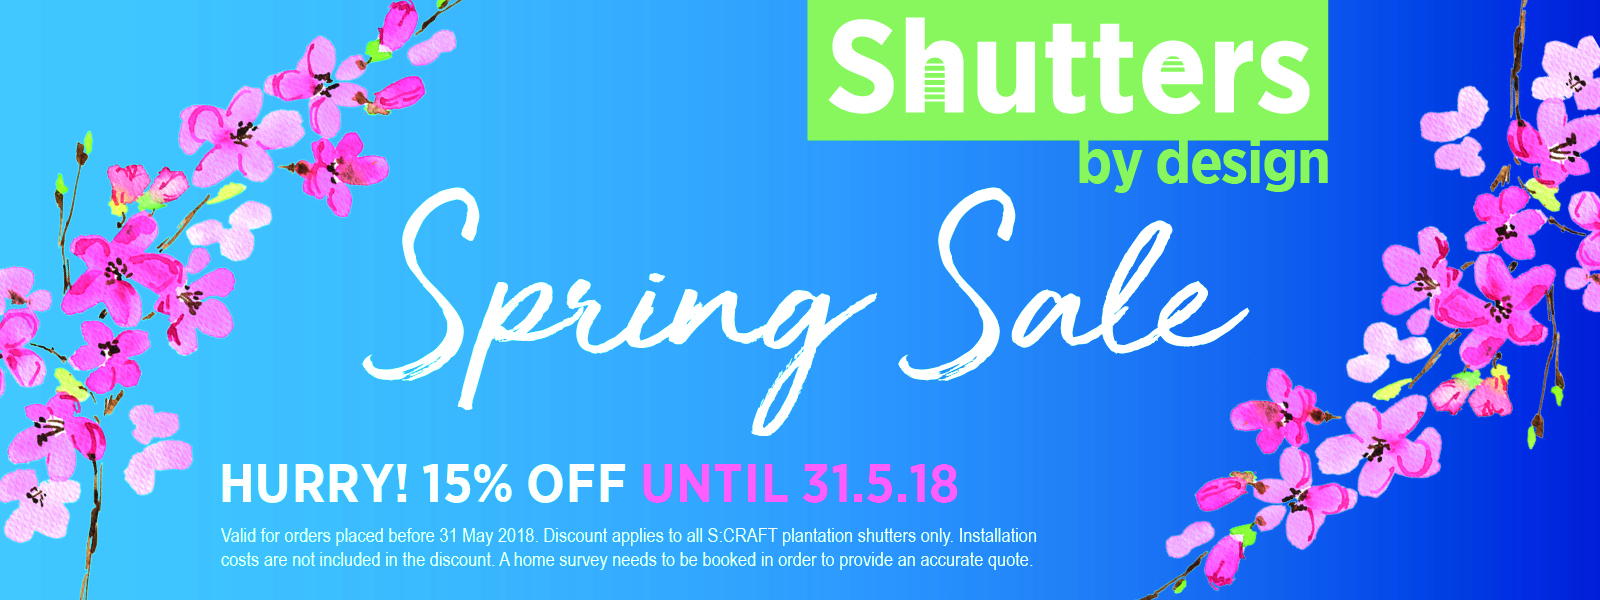 Get 15% Off In Our Spring Sale!